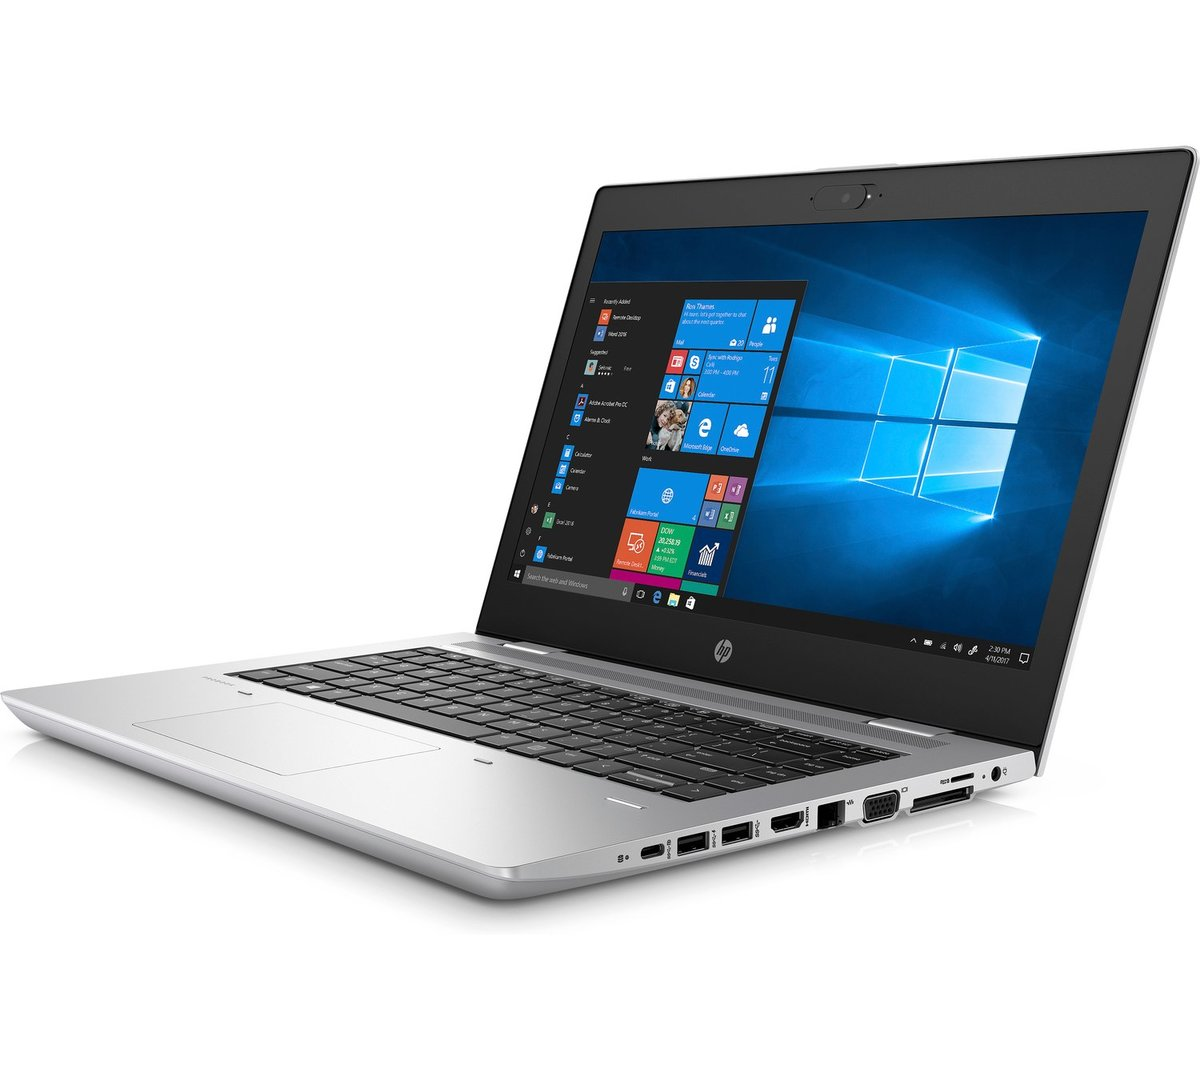 HP ProBook 640 G4 [4CG94PA] 14 inch Professional Laptop - Notebooks and Laptops - Landmark Computers